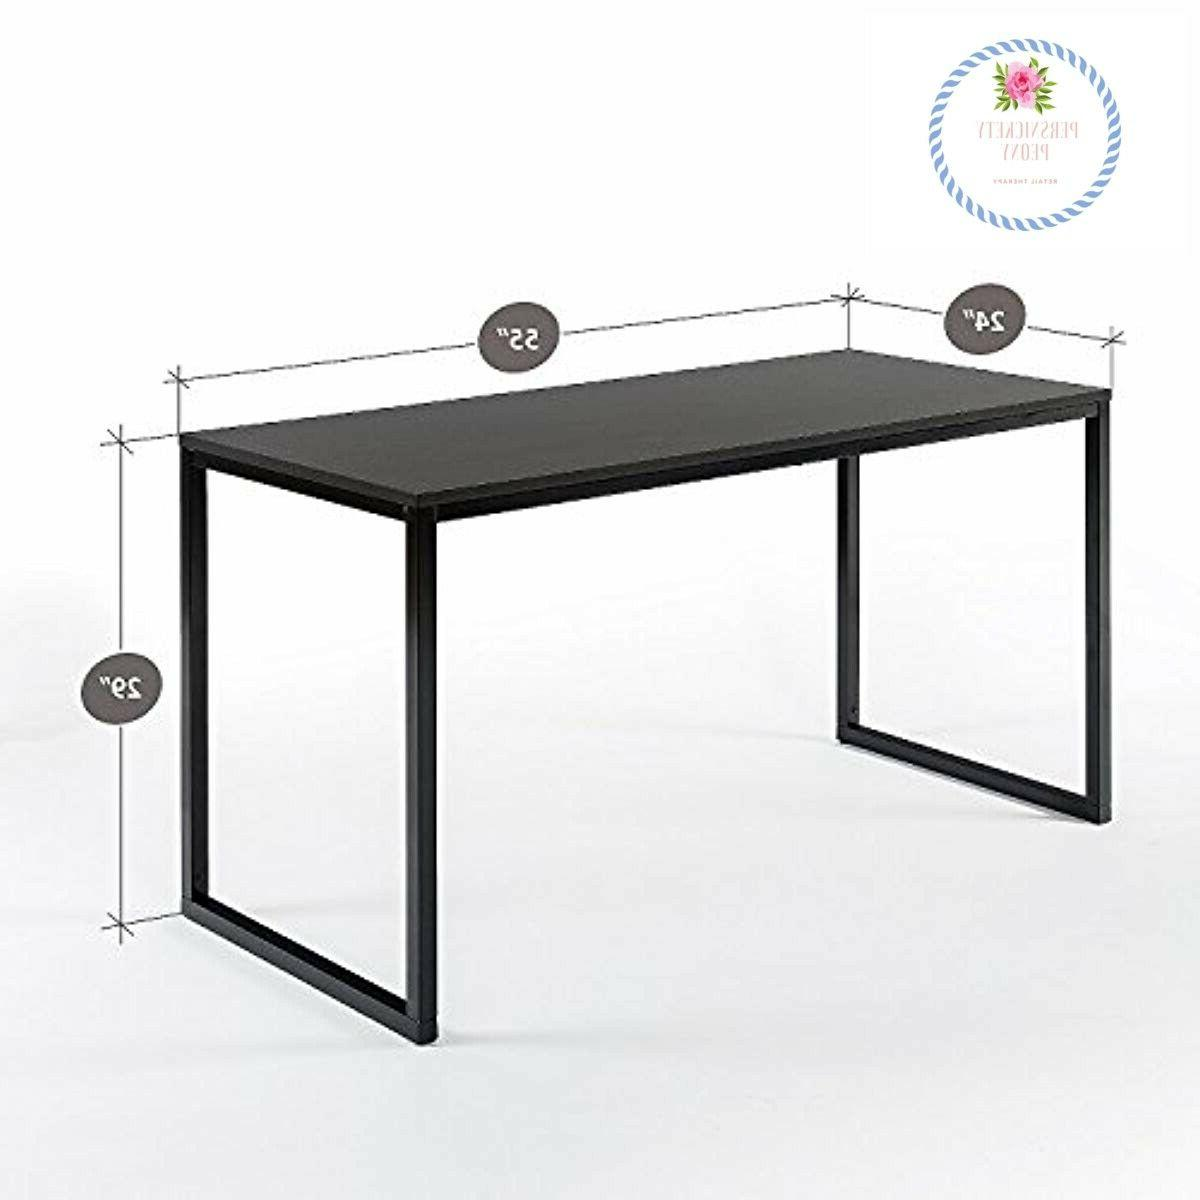 Zinus Soho Table / Only